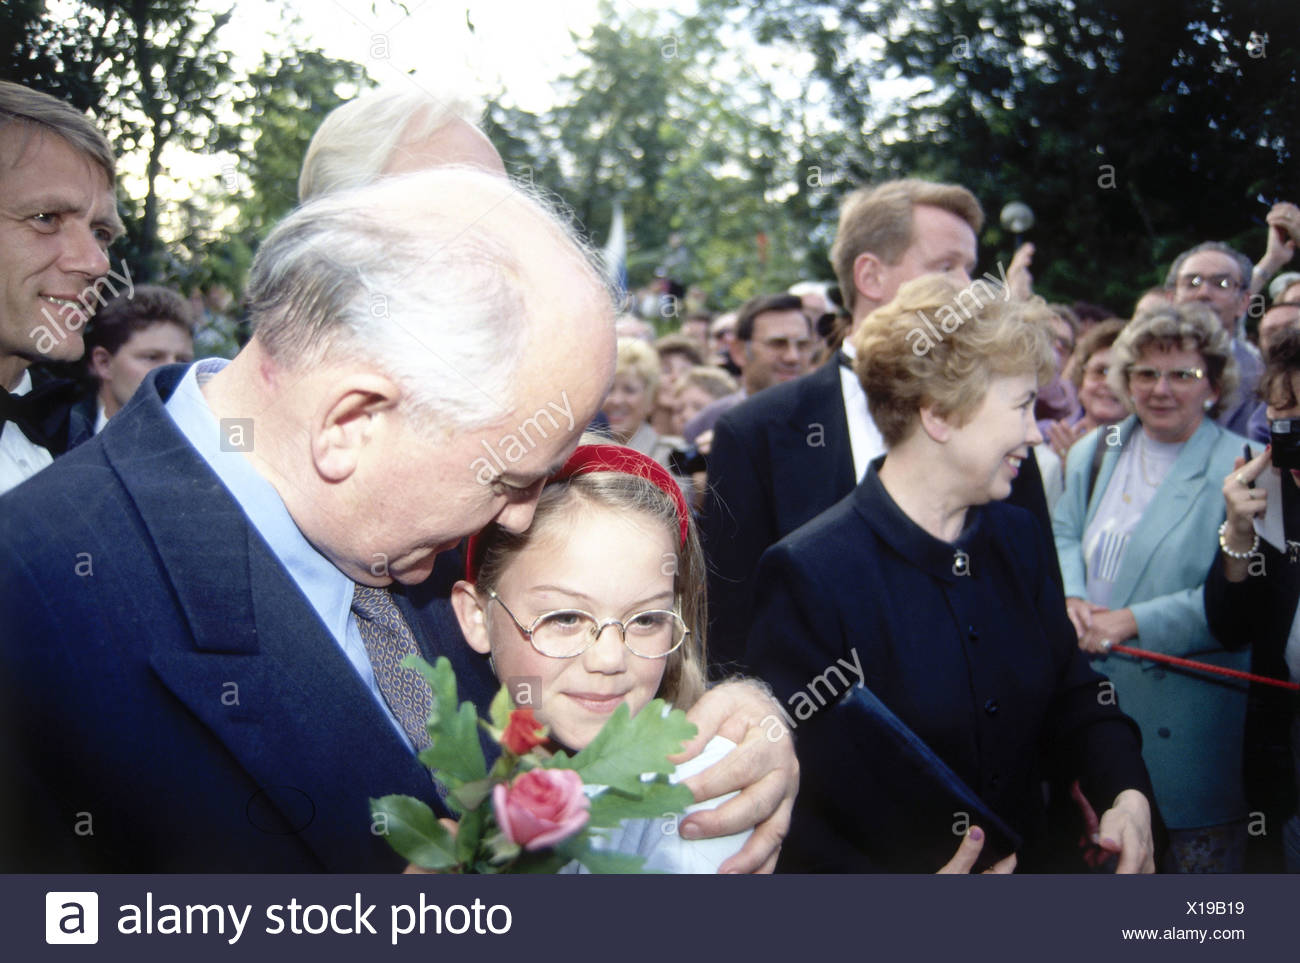 Mikhail Gorbachev, * 2.3.1931, Soviet politician (CPSU), half length, with his wife Raisa Gorbachova and a girl, opening of the Bayreuth Festival, 25.7.1993, Additional-Rights-Clearances-NA - Stock Image